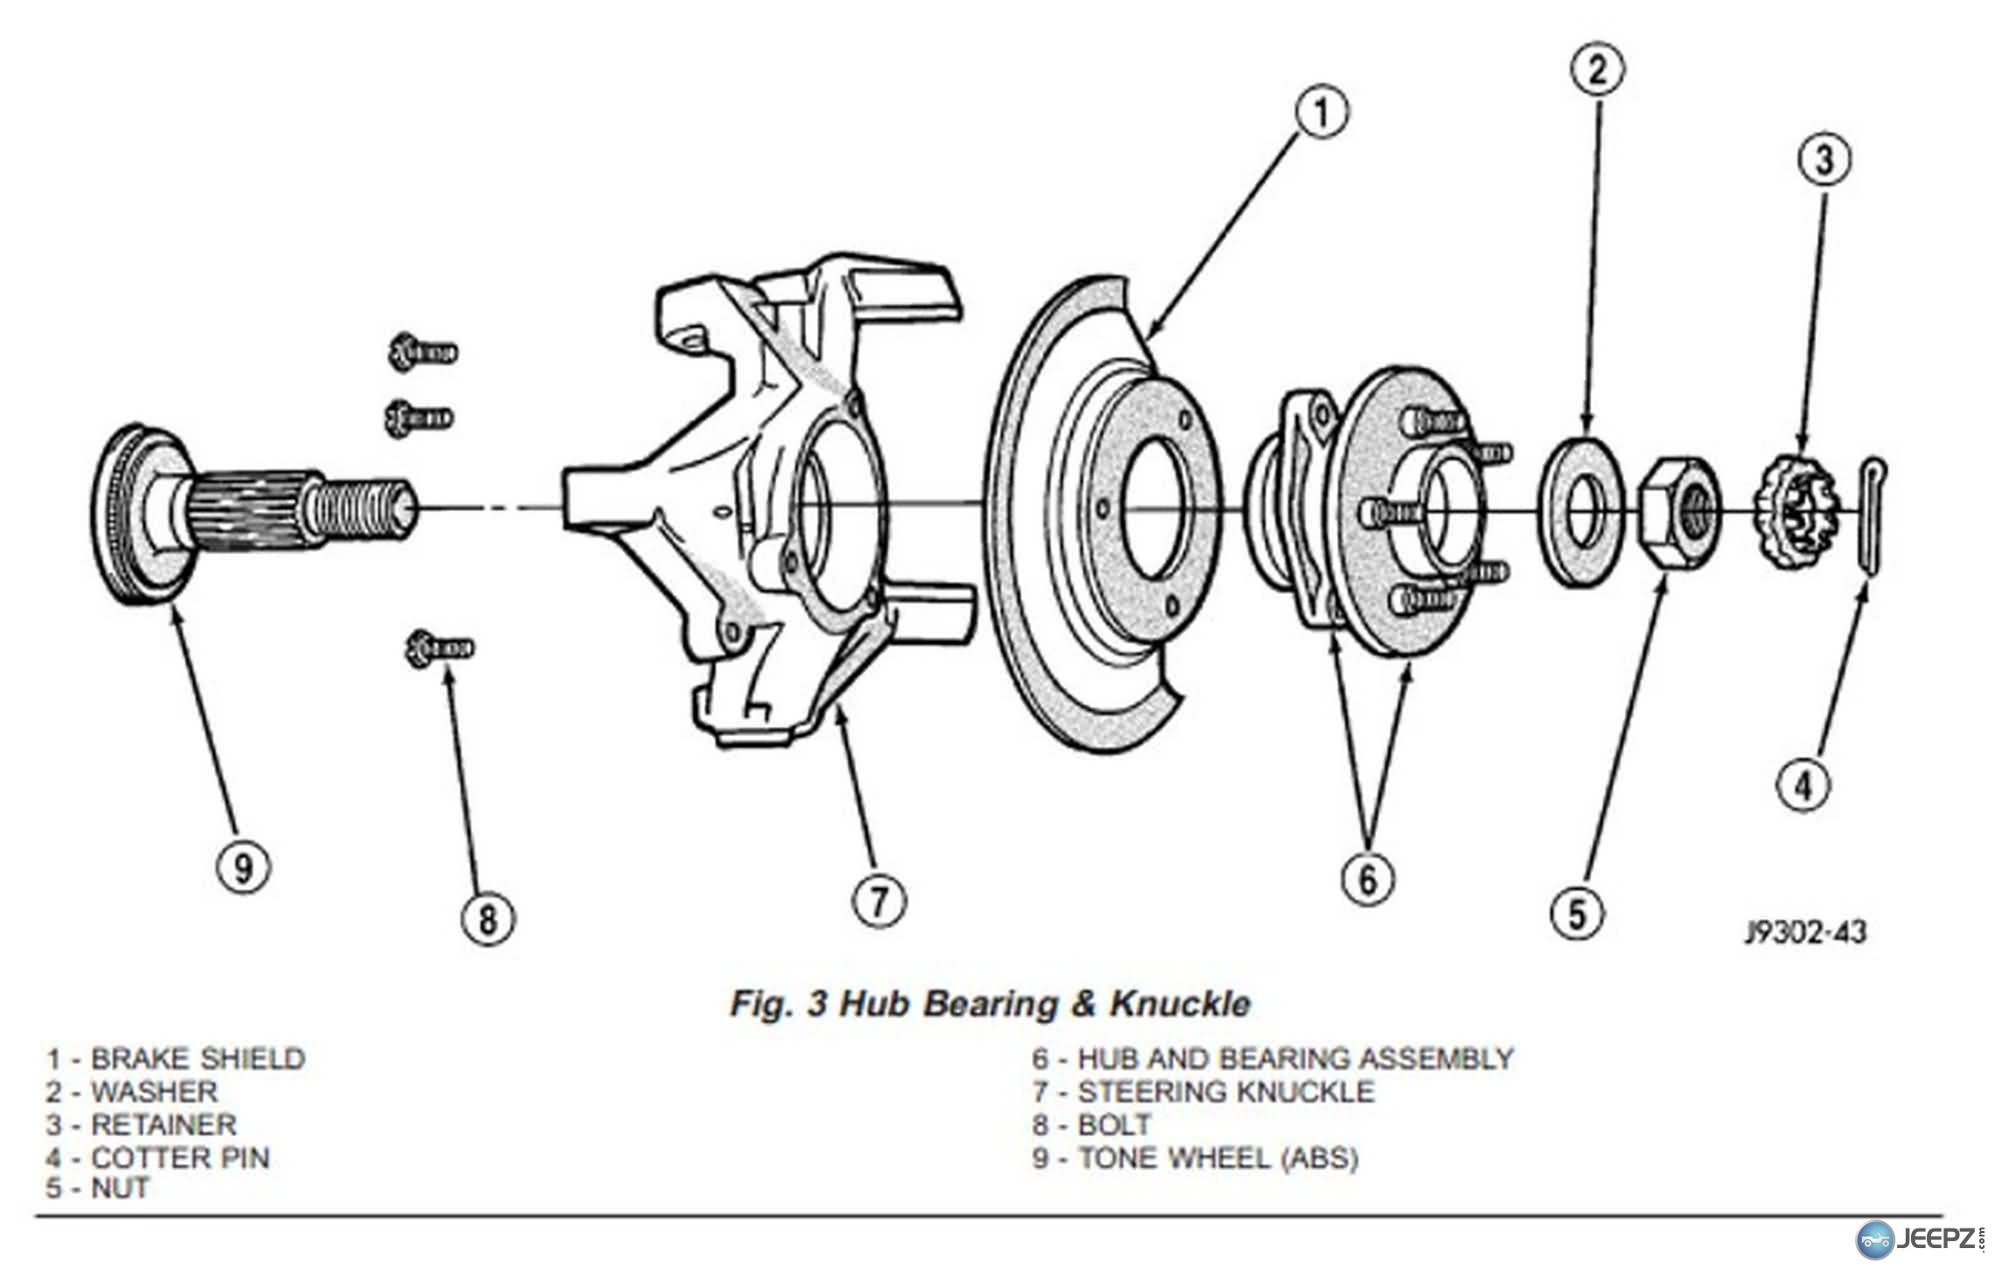 jeep tj wiring diagram jeep discover your wiring rear wheel bearing diagram rear wheel bearing diagram in addition under hood fuse box 95 wrangler